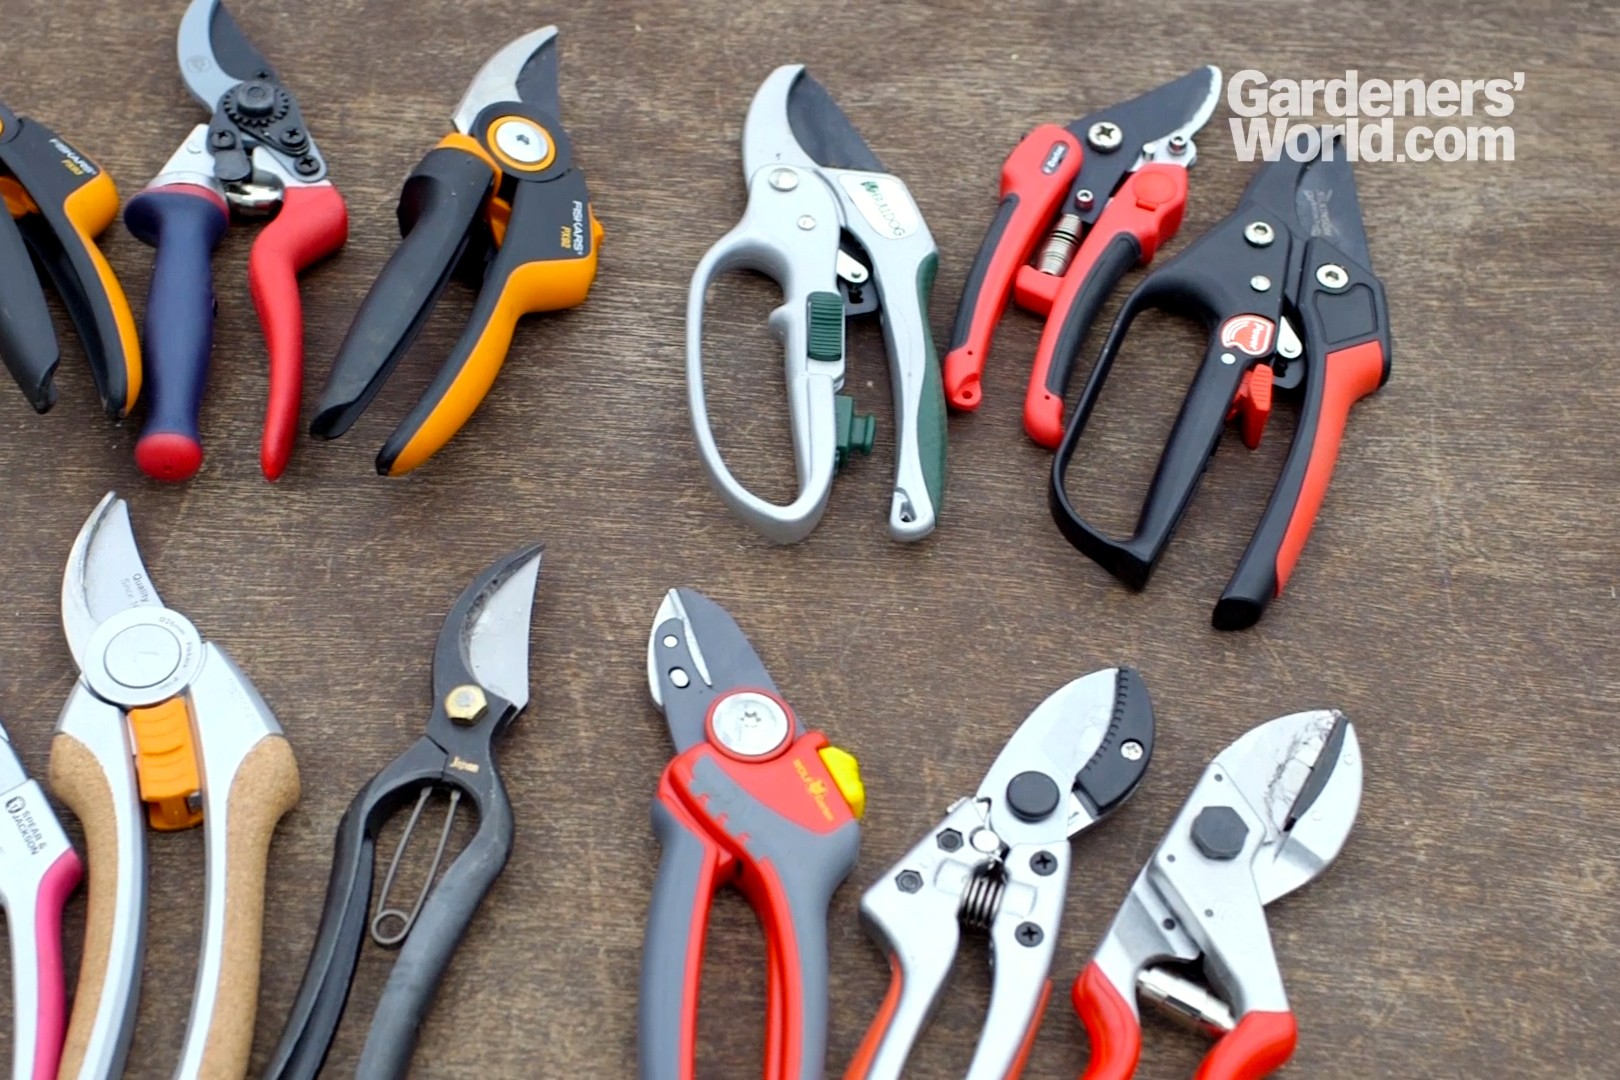 Secateurs Buyer Guide